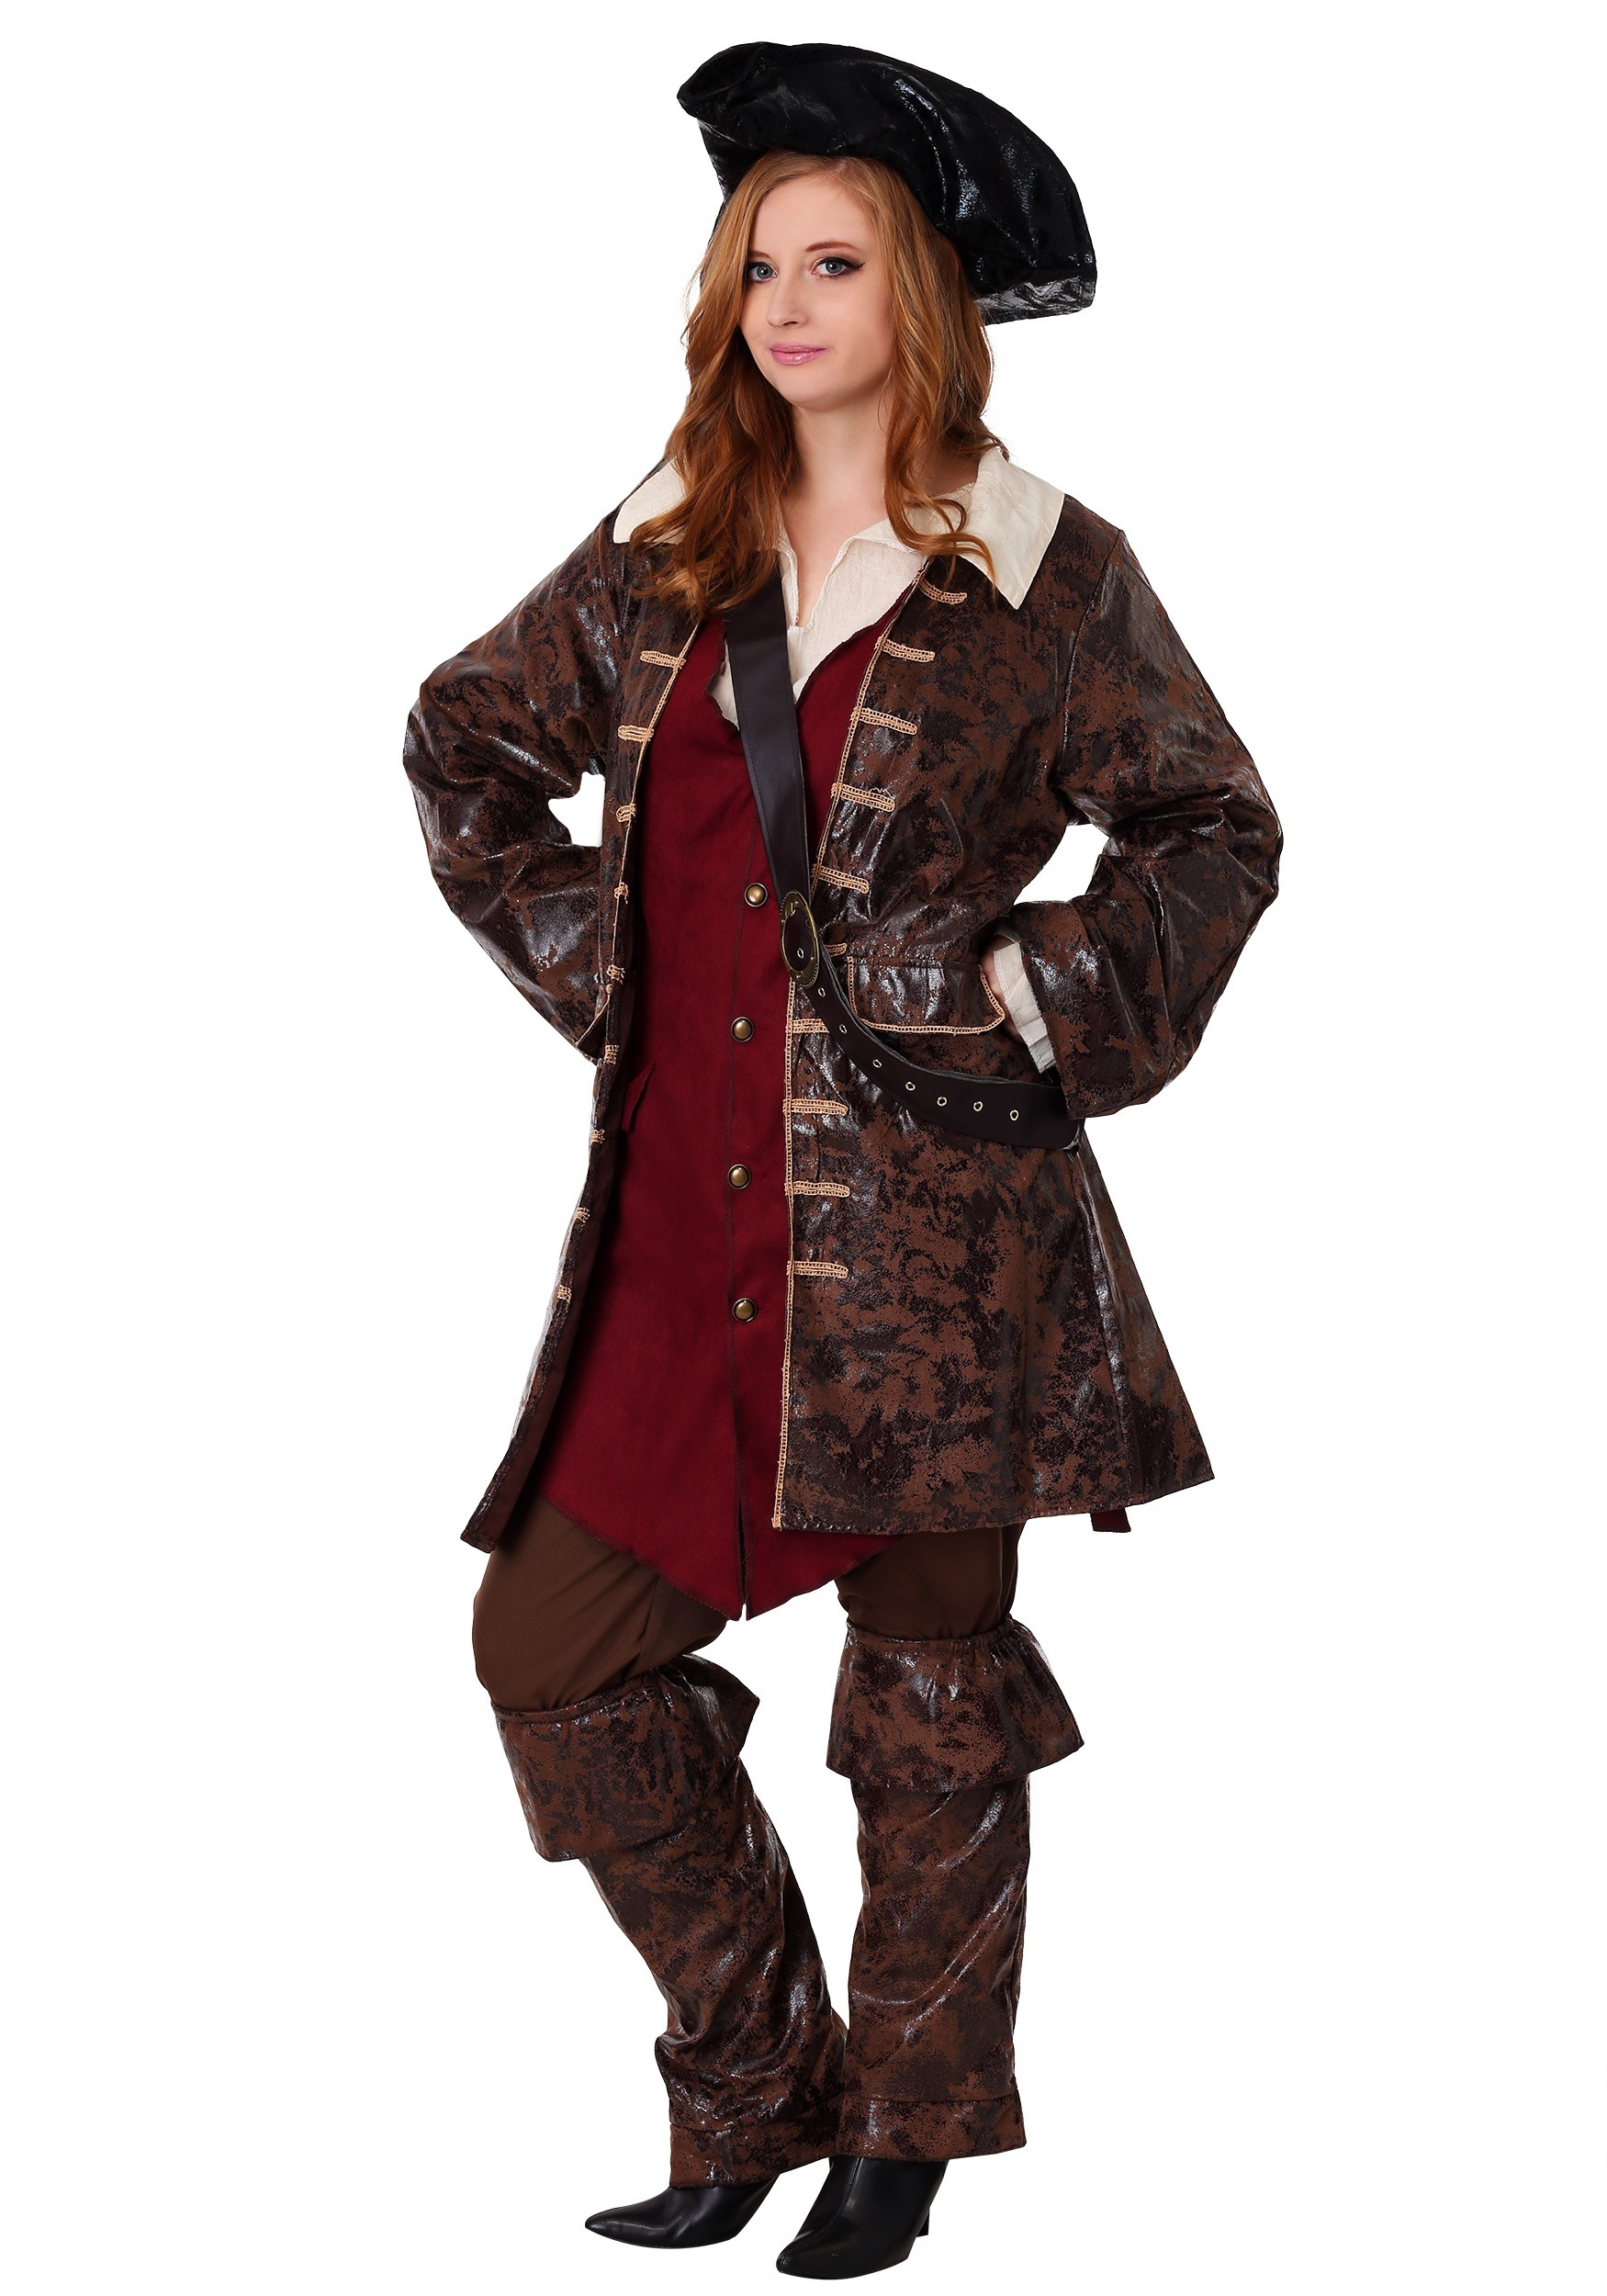 Caribbean_Pirate_Plus_Size_Costume_for_Women